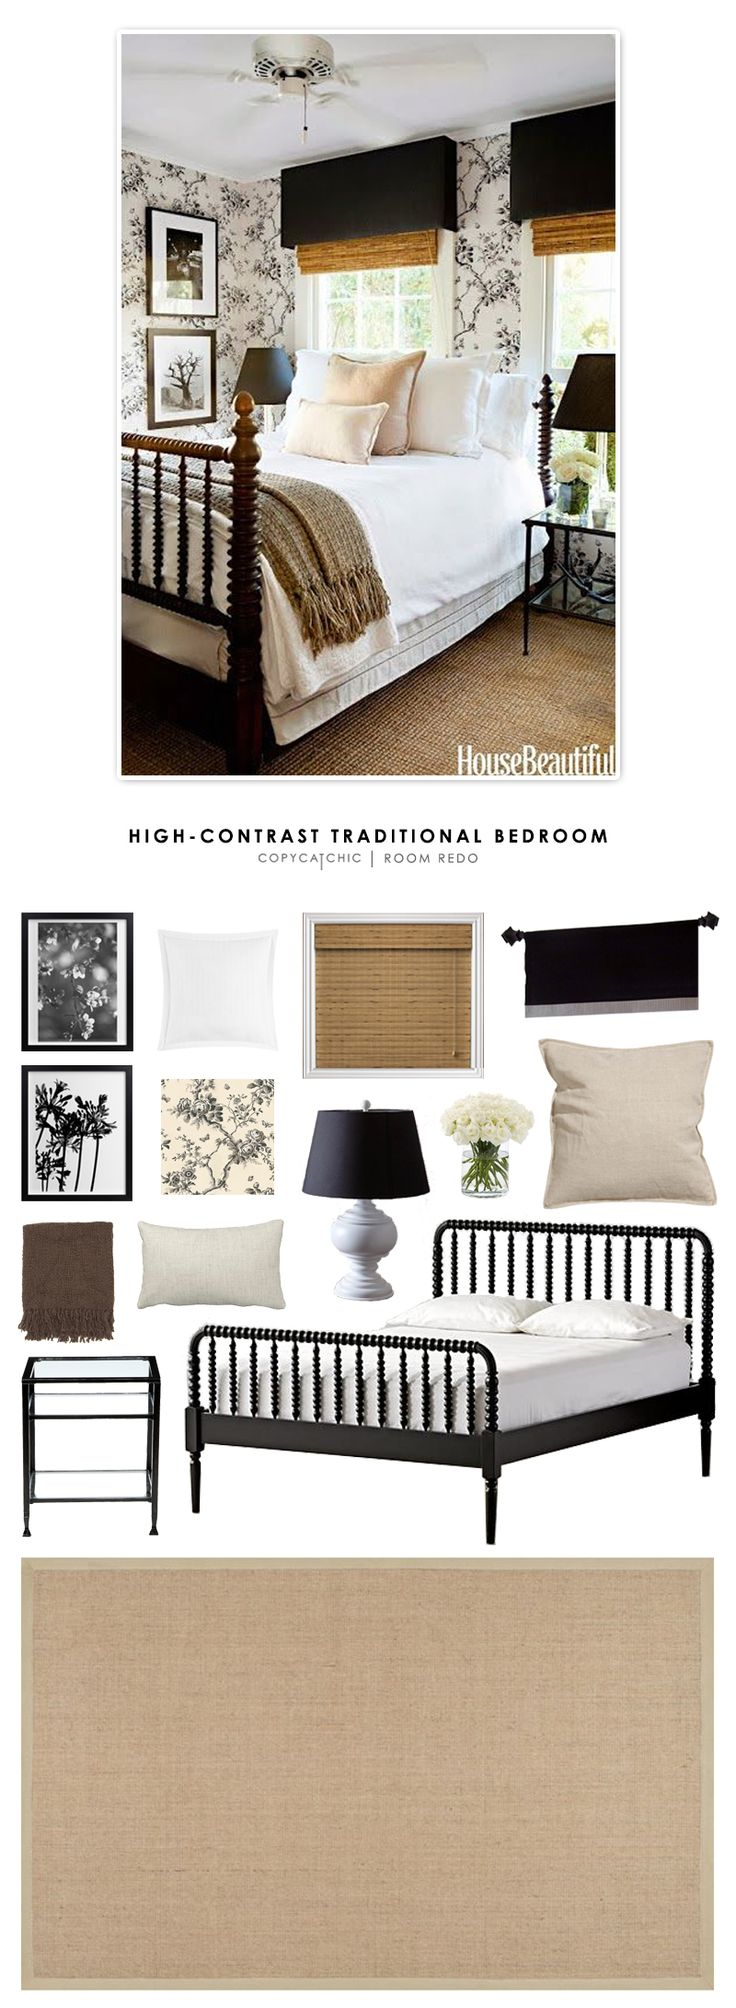 Copy Cat Chic Room Redo | High-Contrast Traditional Bedroom | | Copy Cat Chic | chic for cheap | Bloglovin'